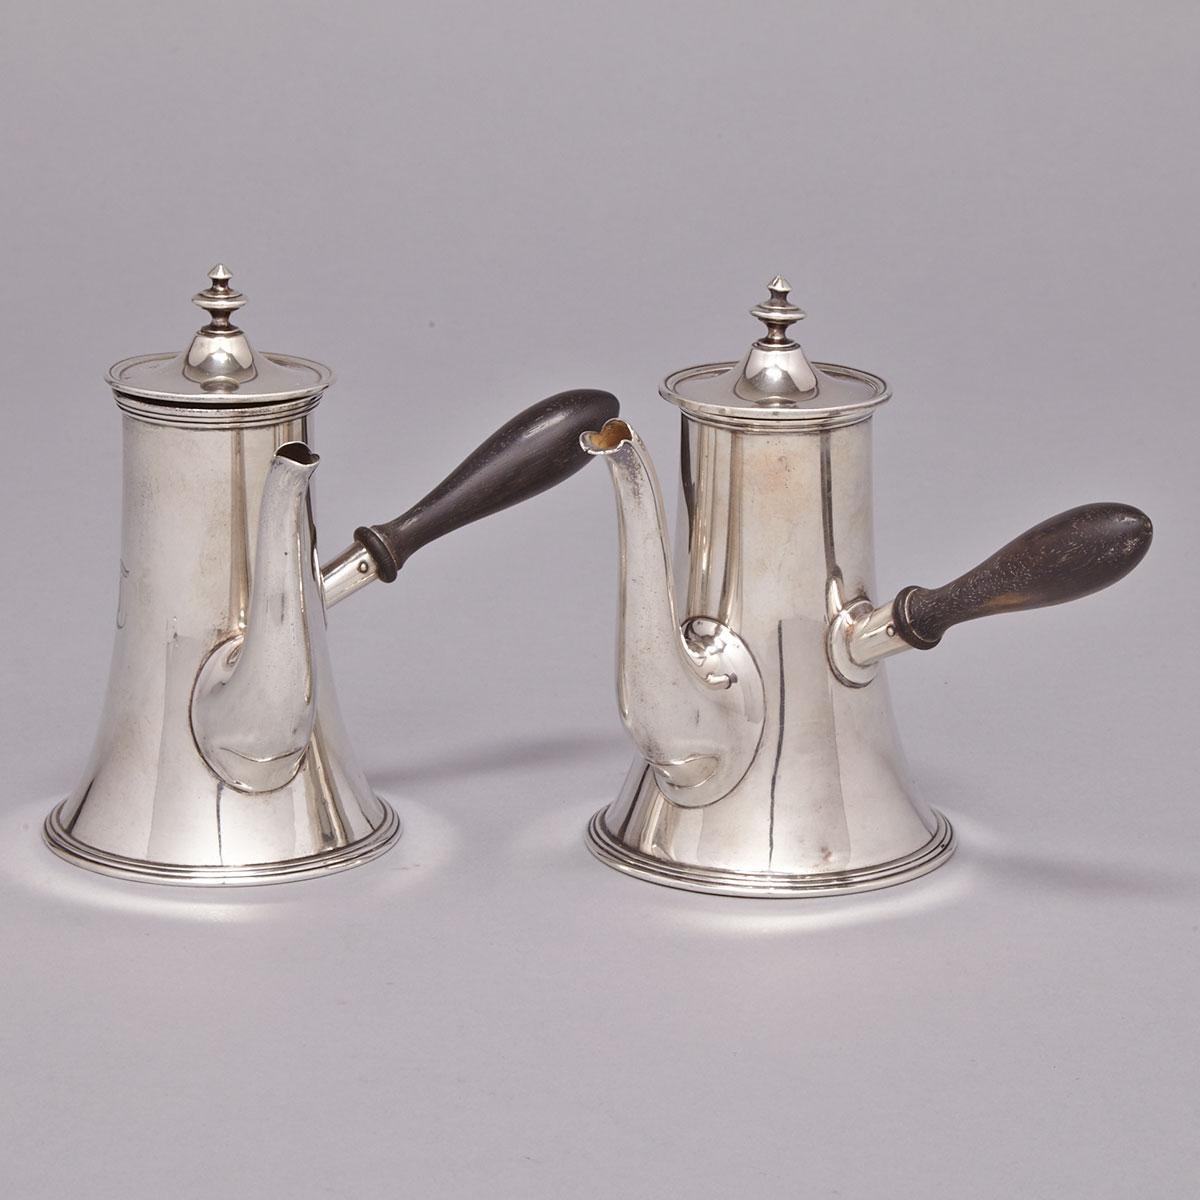 Two Canadian Silver Small Coffee Pots, Ryrie Bros., Toronto, Ont., early 20th century